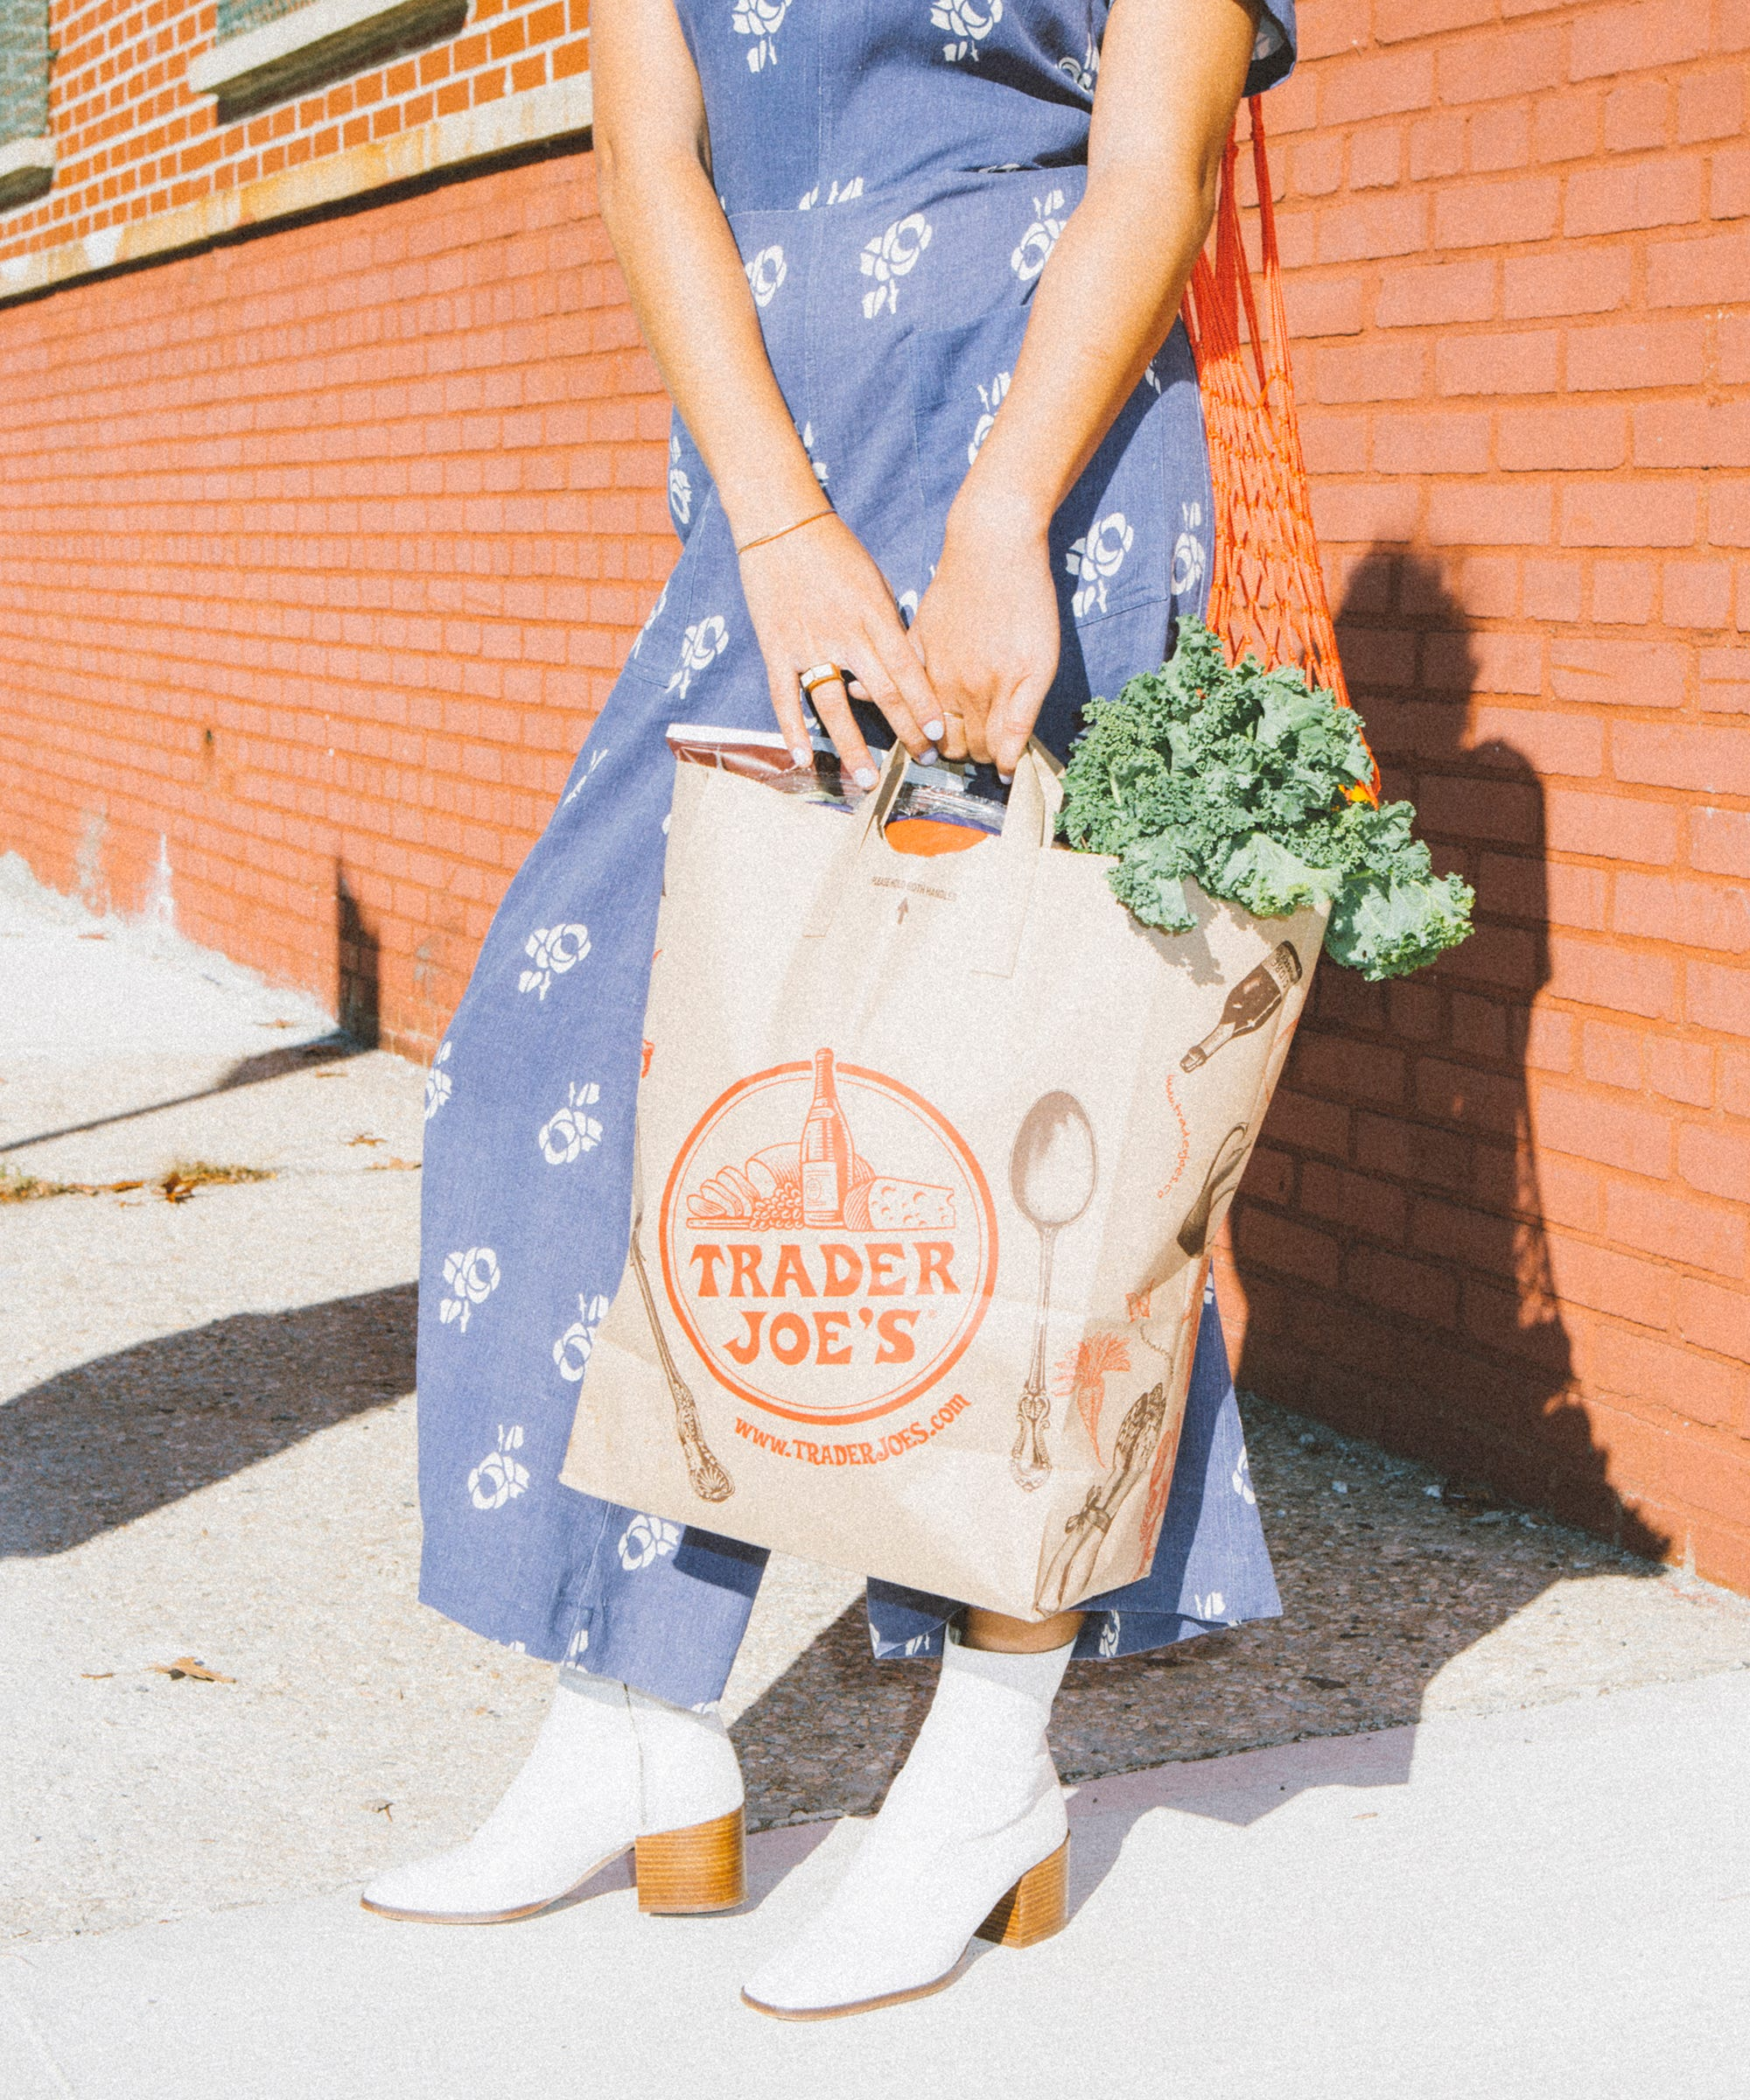 Working At Trader Joes: Secrets Of Employees On The Job